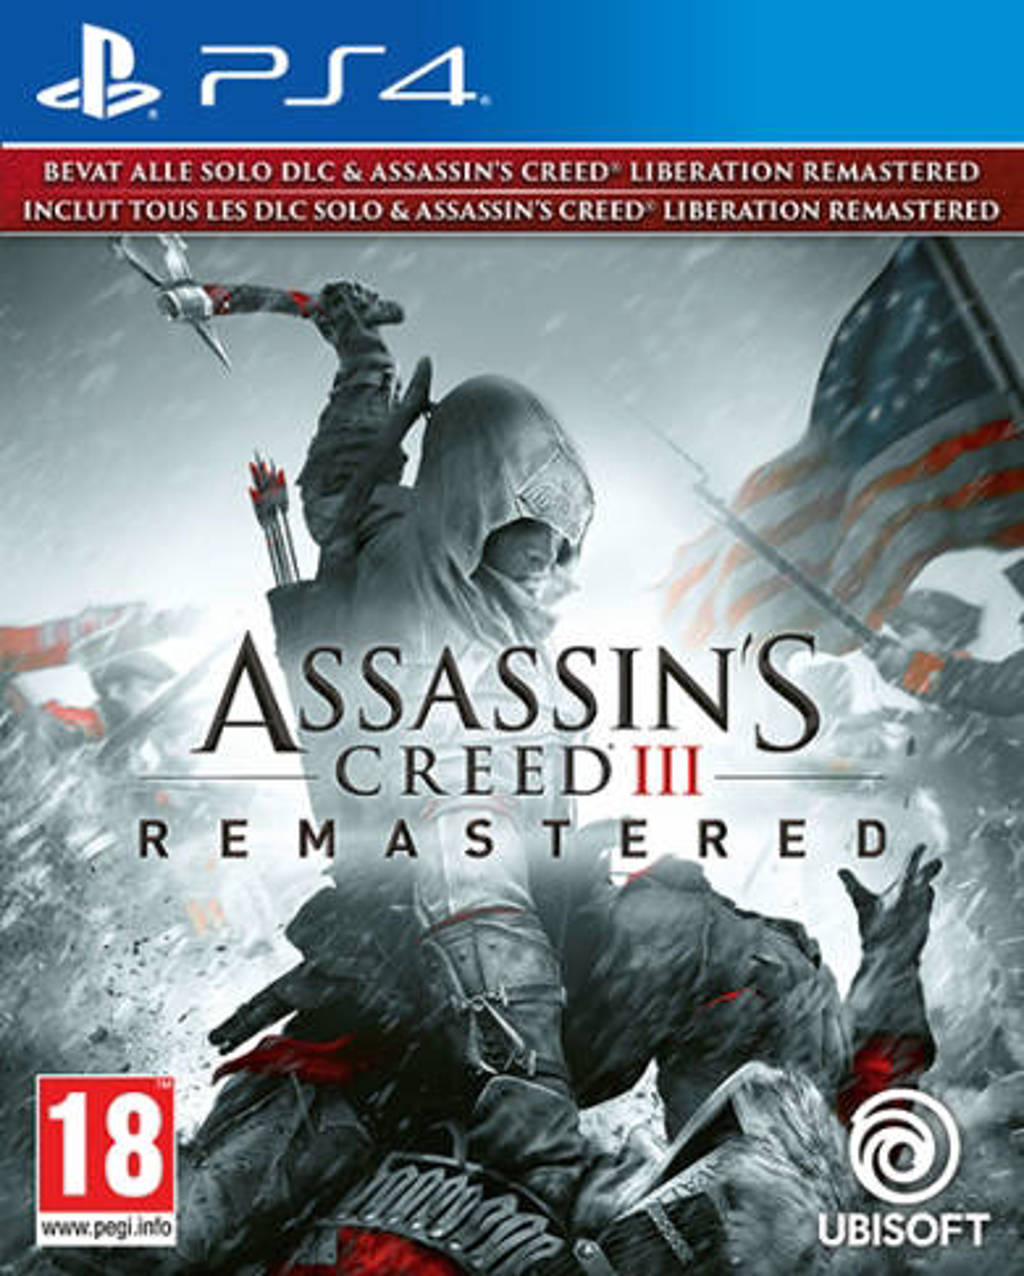 Assassins creed 3 & Liberation remastered (PlayStation 4)